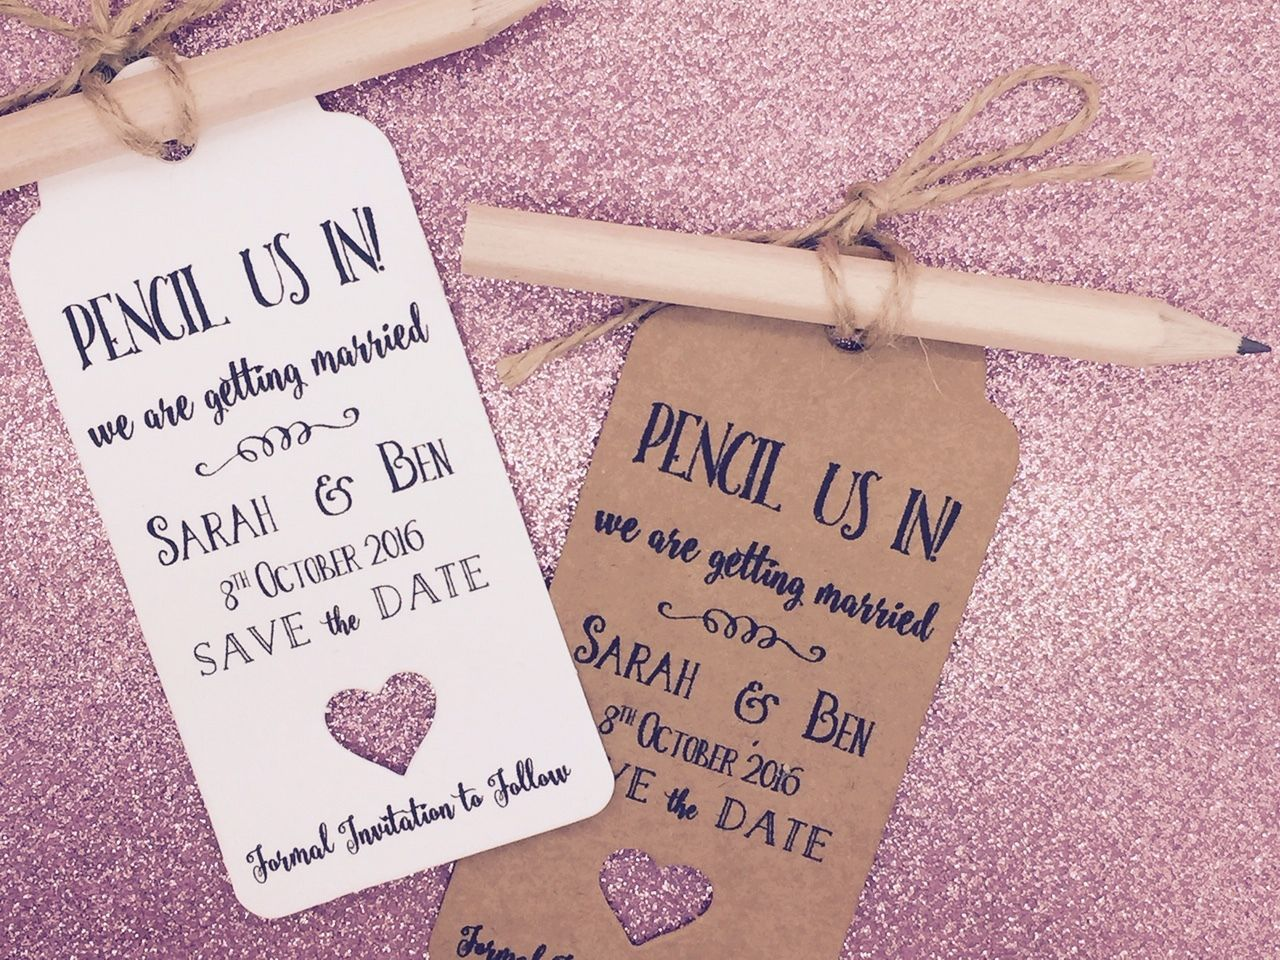 Pencil Us In Save The Date / Evening Card Wedding Invitation with ...